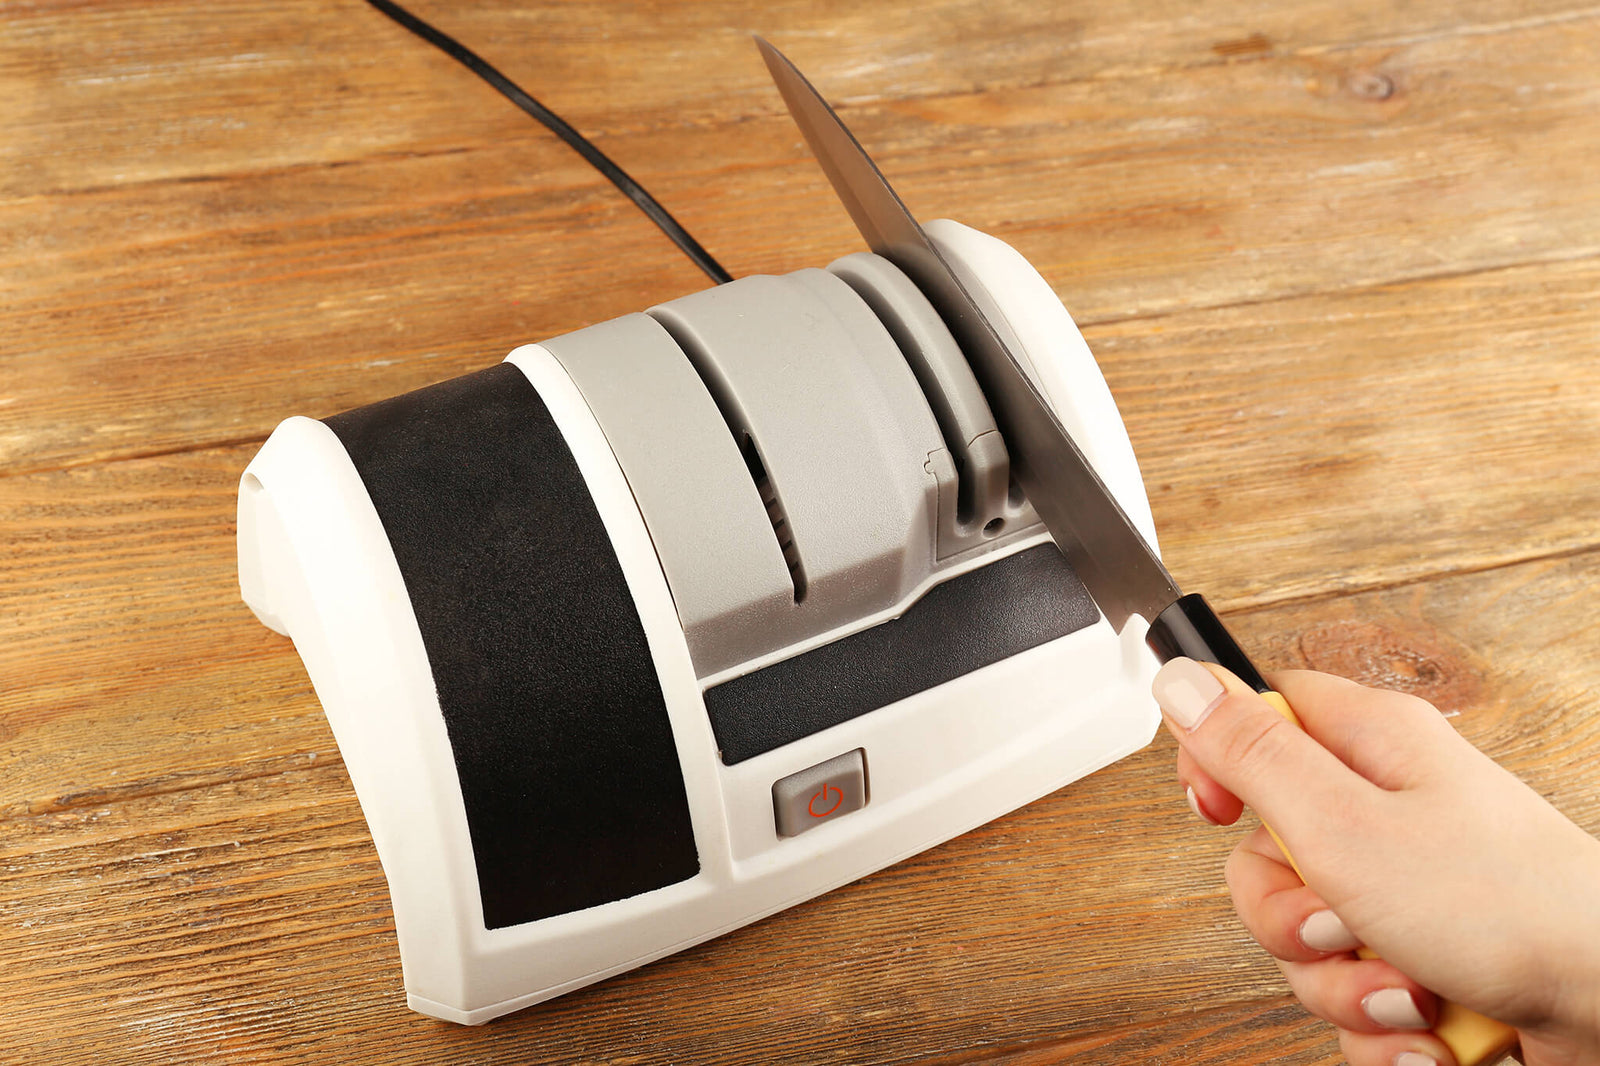 Electric Knife Sharpeners 101 - House of Knives